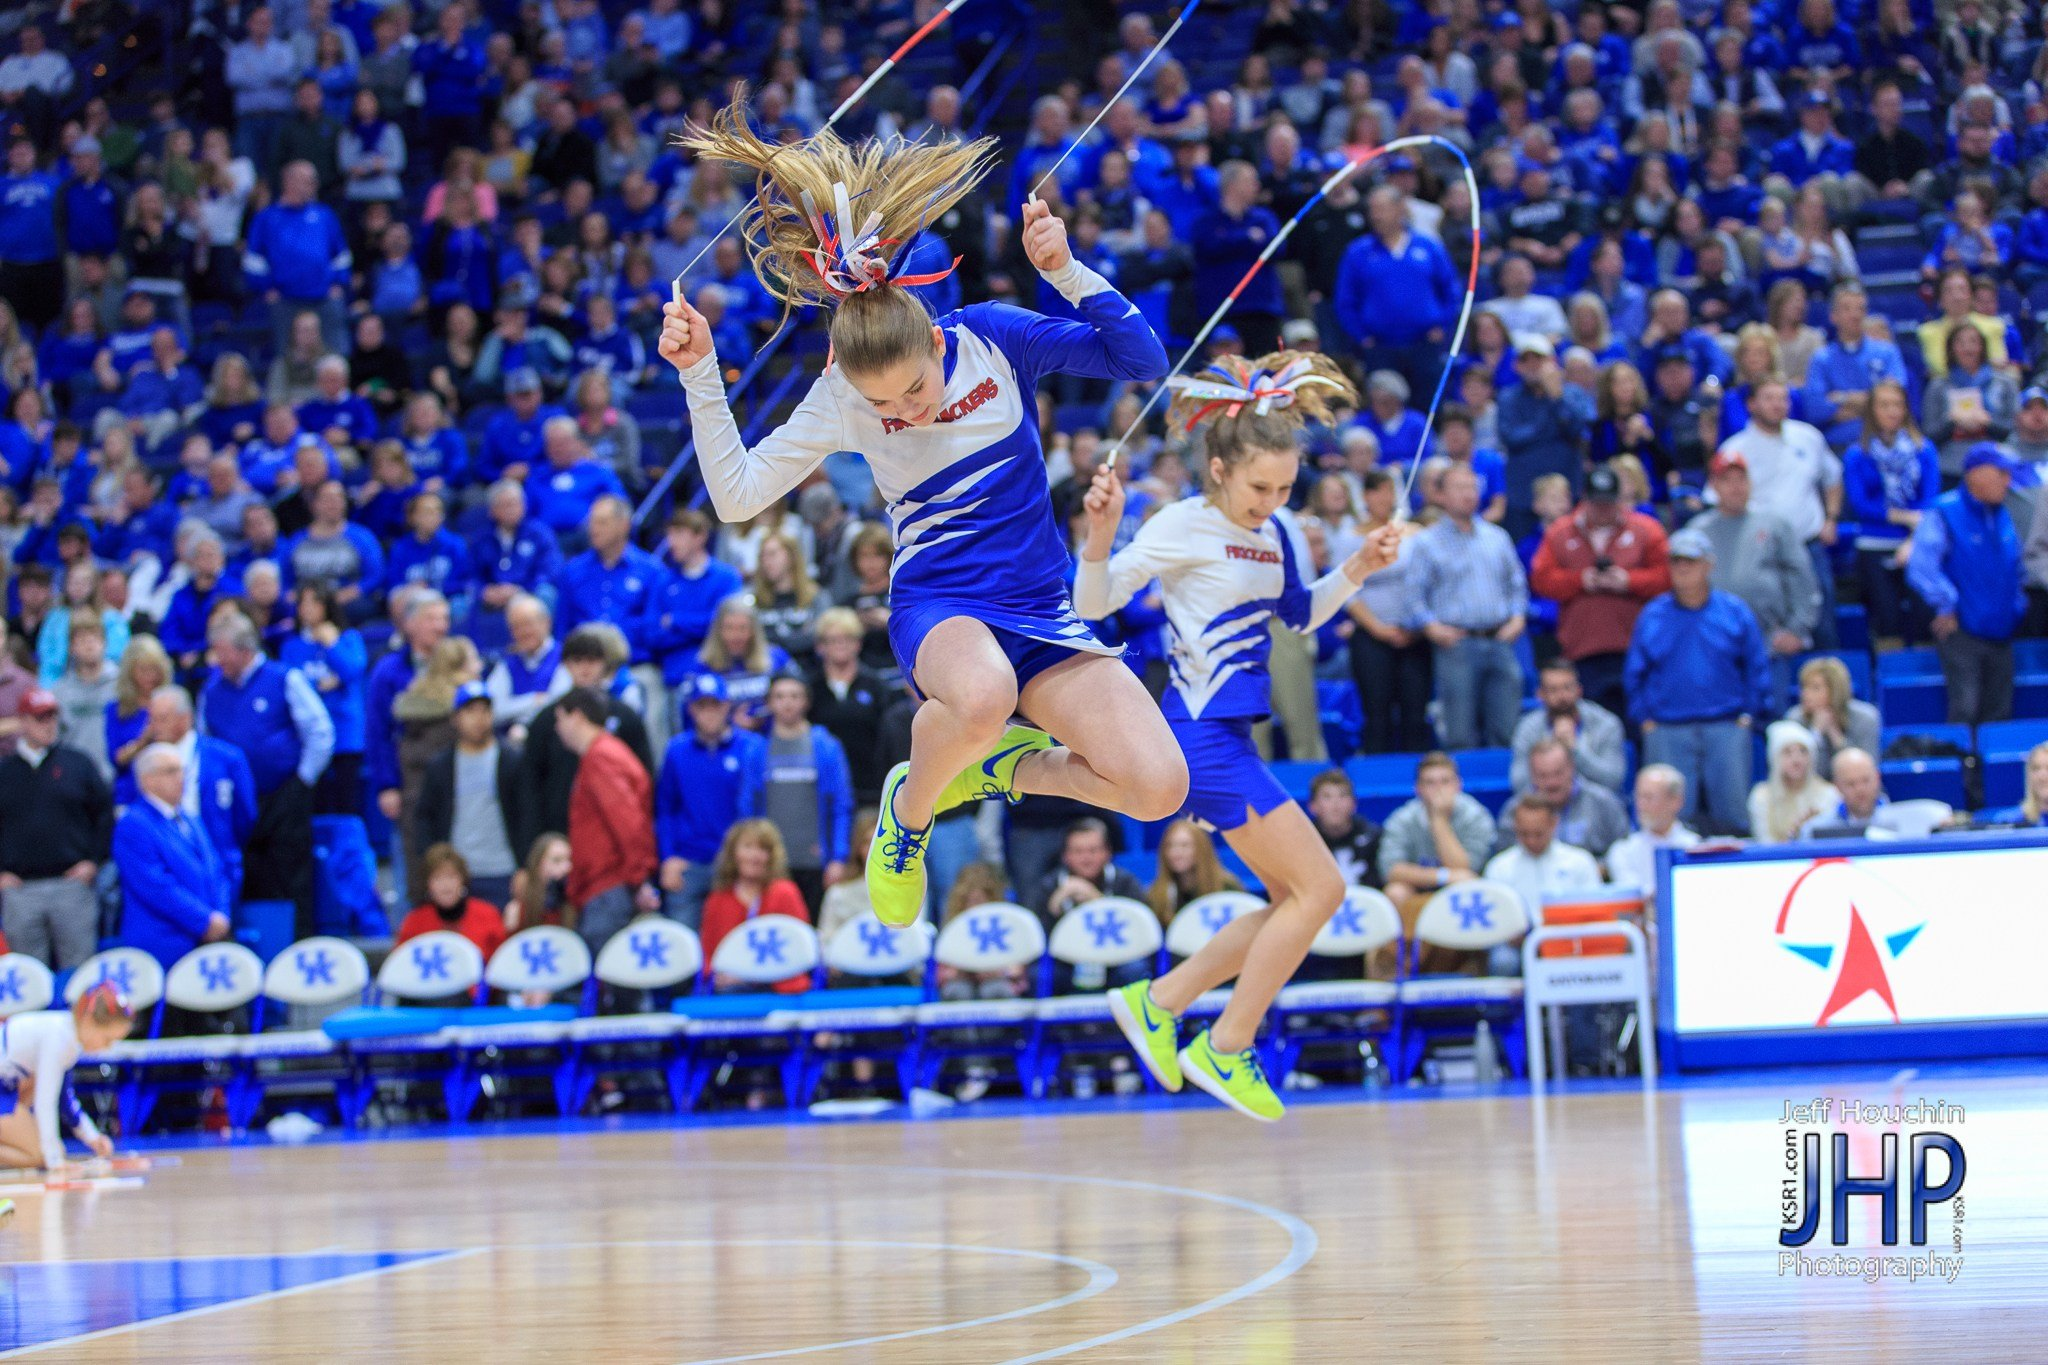 The Firecrackers performed at Rupp Arena last month. Saturday they will perform in St. Louis at the SEC Tournament. (Jeff Houchin Photo)